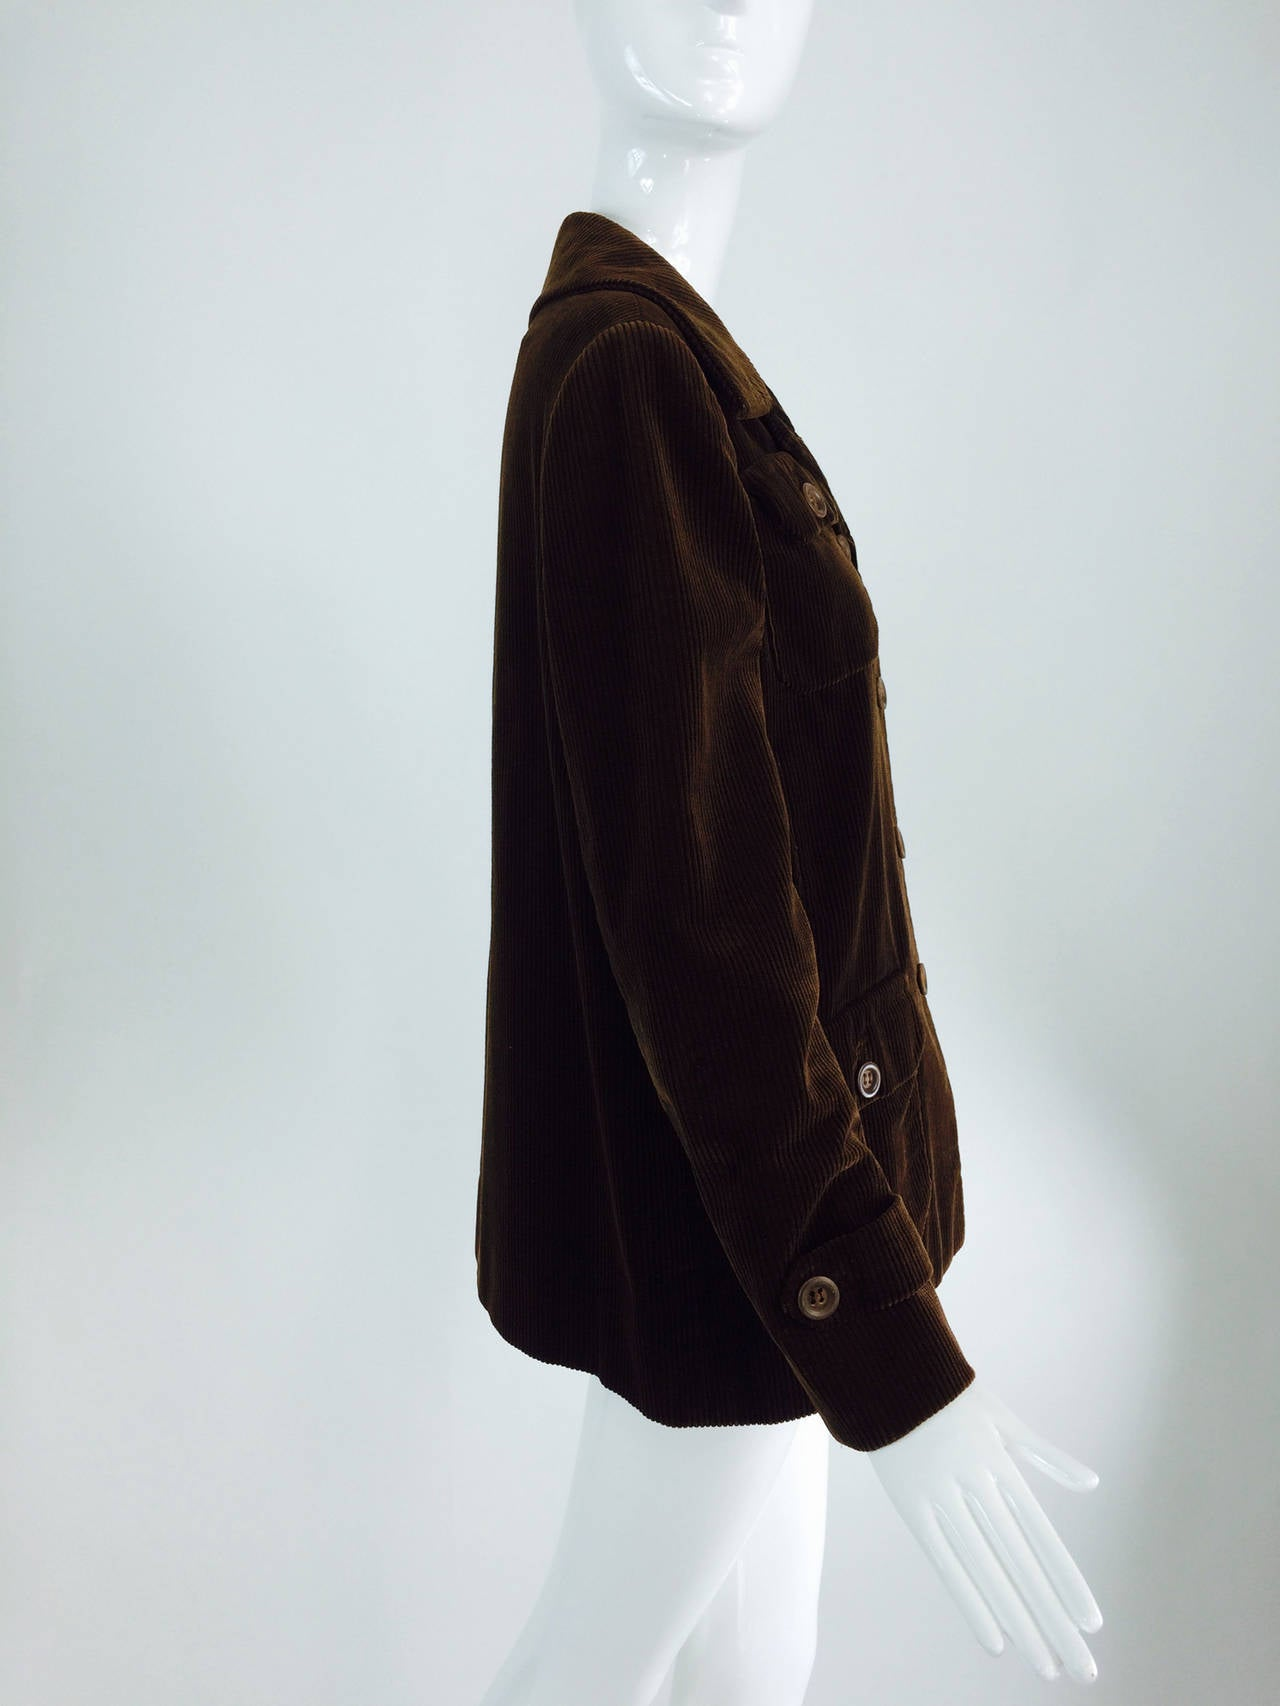 Black Bill Blass chocolate brown corduroy country jacket early 1970s For Sale